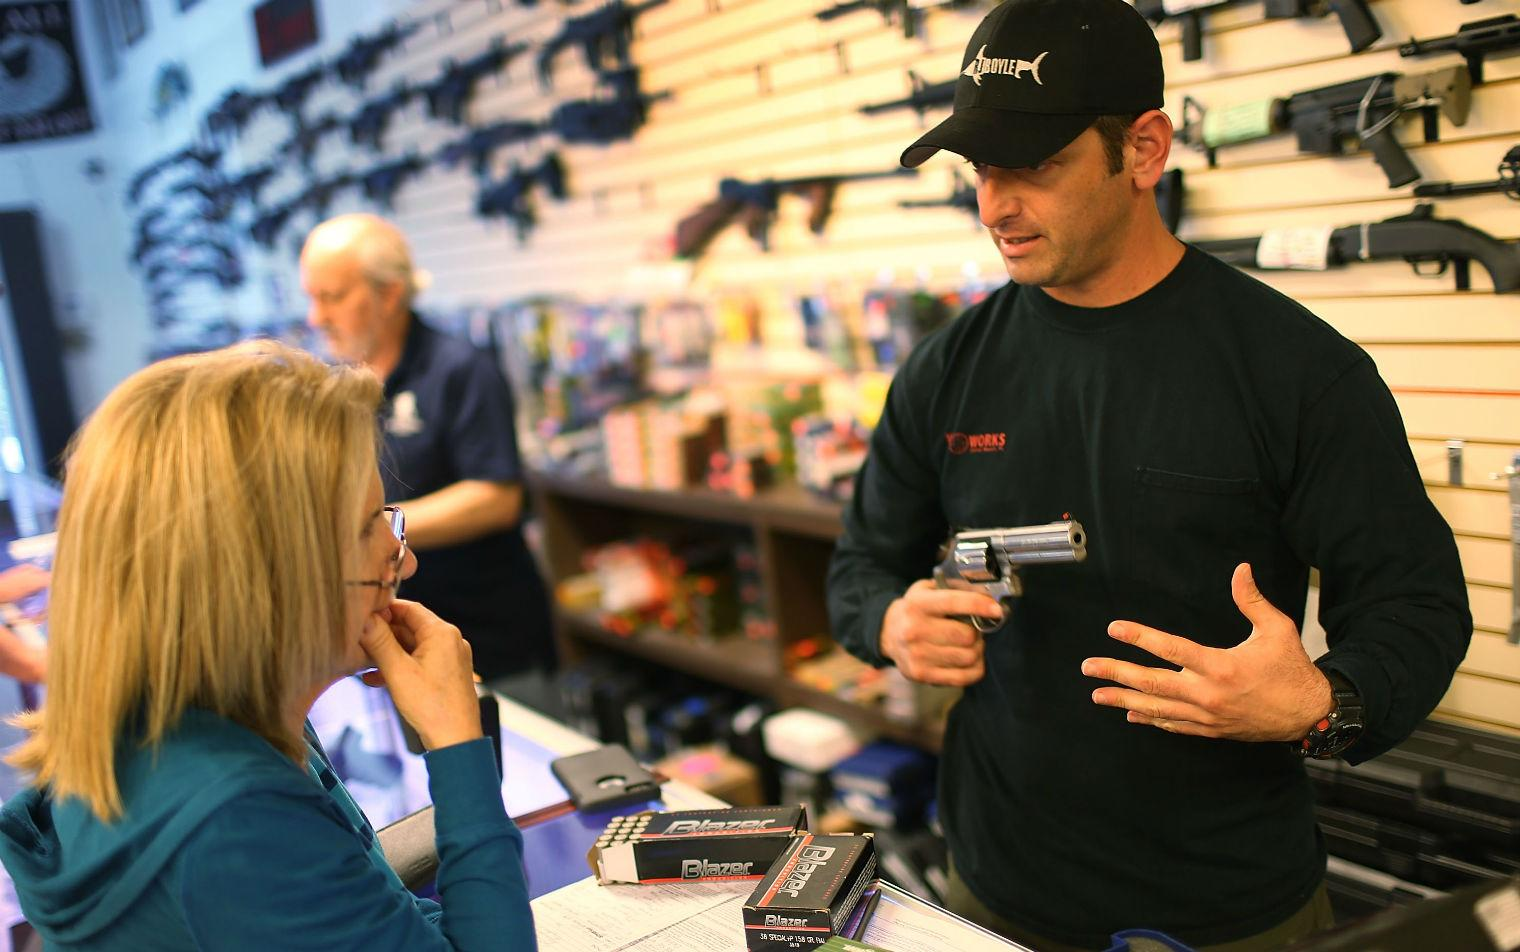 There are more gun shops in the US than Starbucks